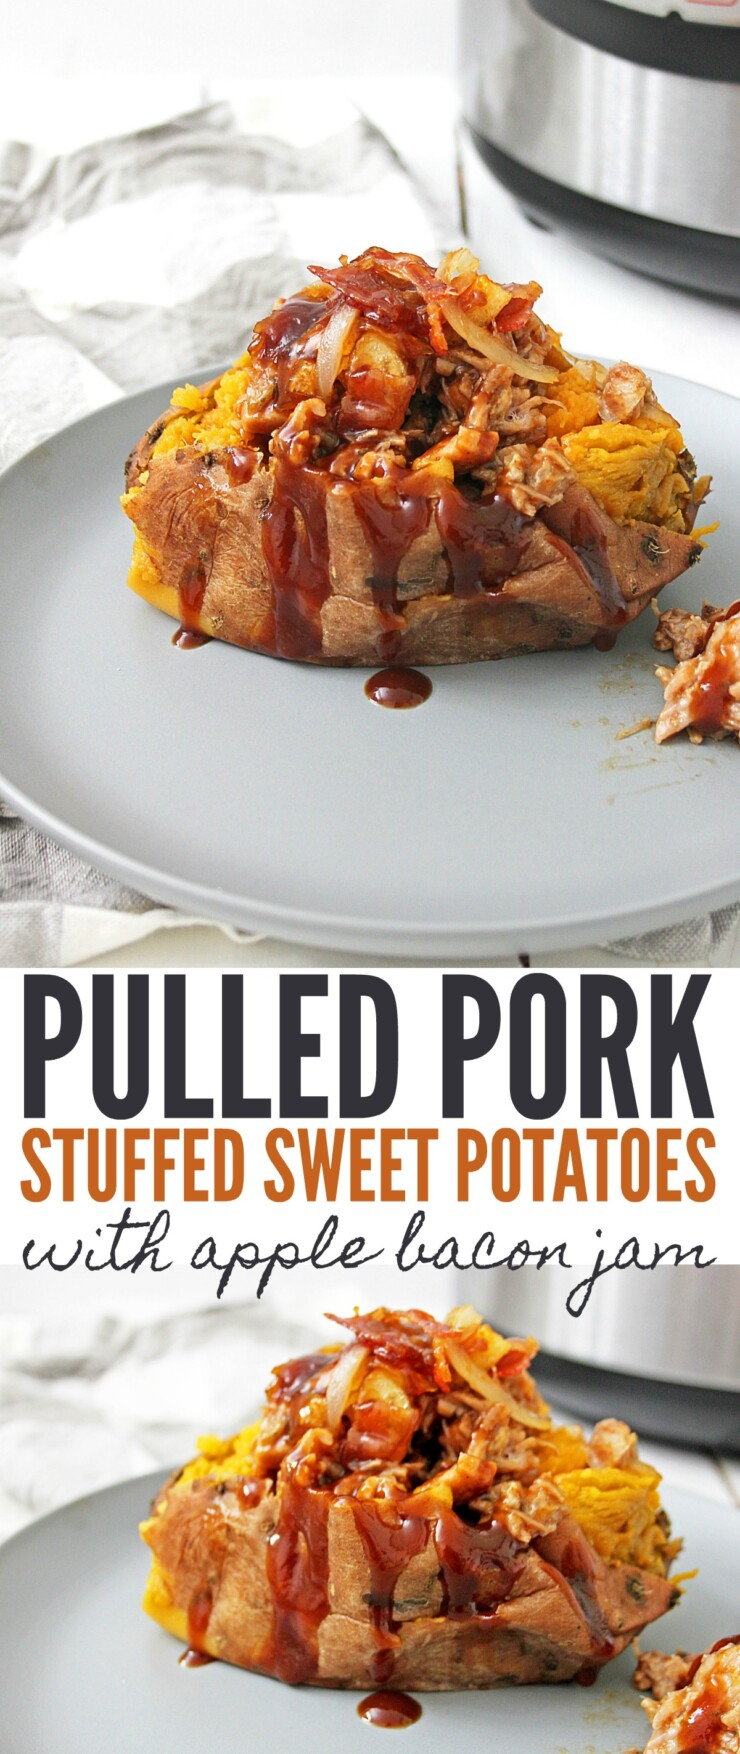 This Instant Pot Pulled Pork Stuffed Sweet Potatoes with Apple Bacon Jam features soft and creamy sweet potatoes cooked to perfection in the instant pot topped with pulled pork, onions, bbq sauce and an incredible apple bacon jam.